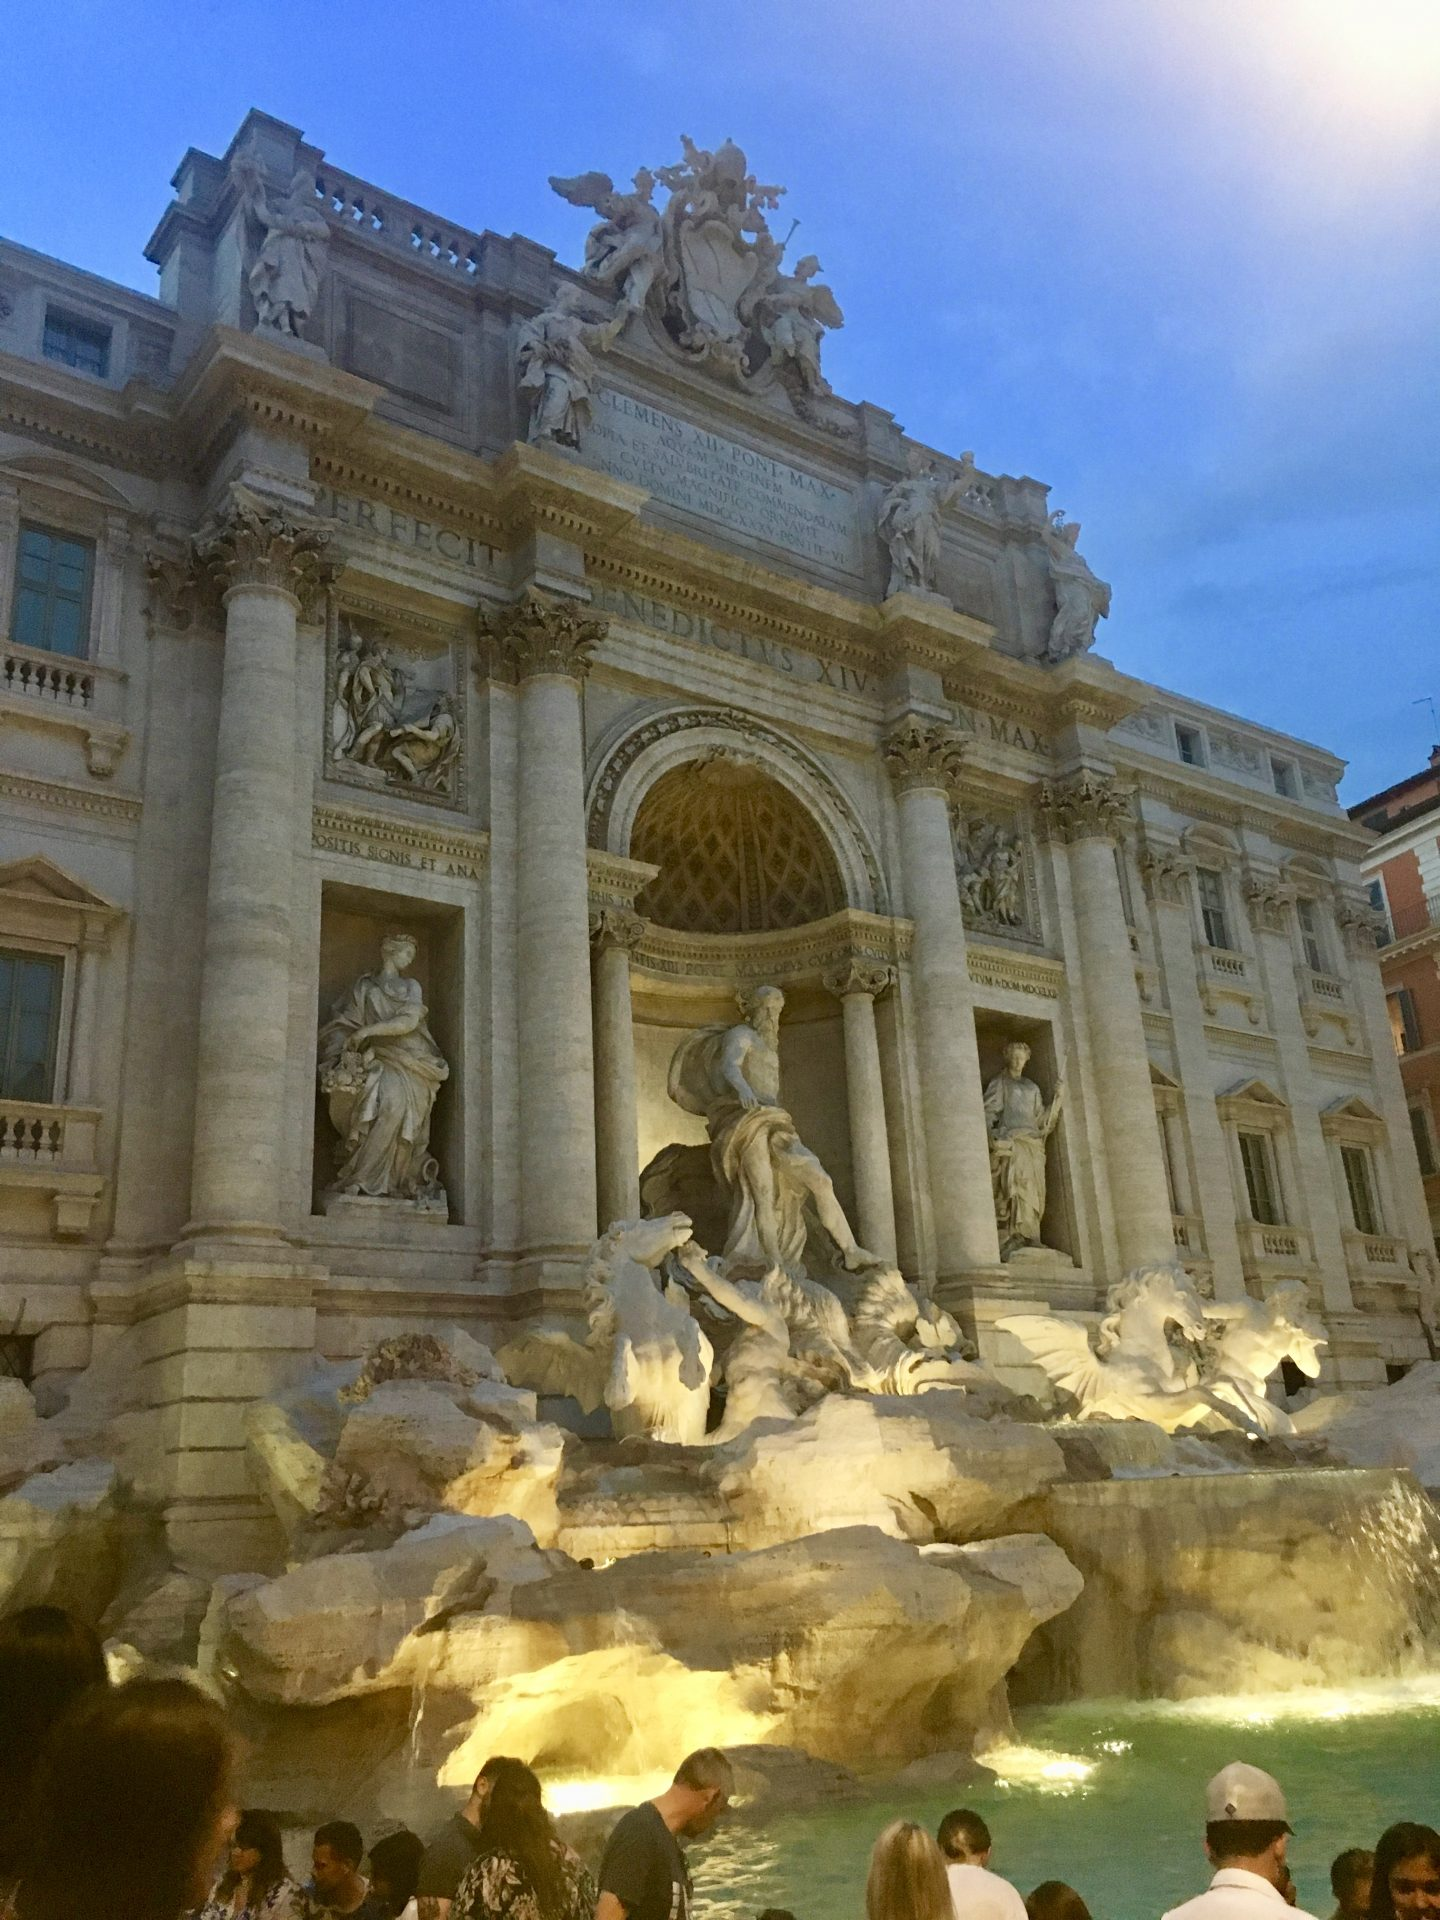 10 amazing places to visit in Italy